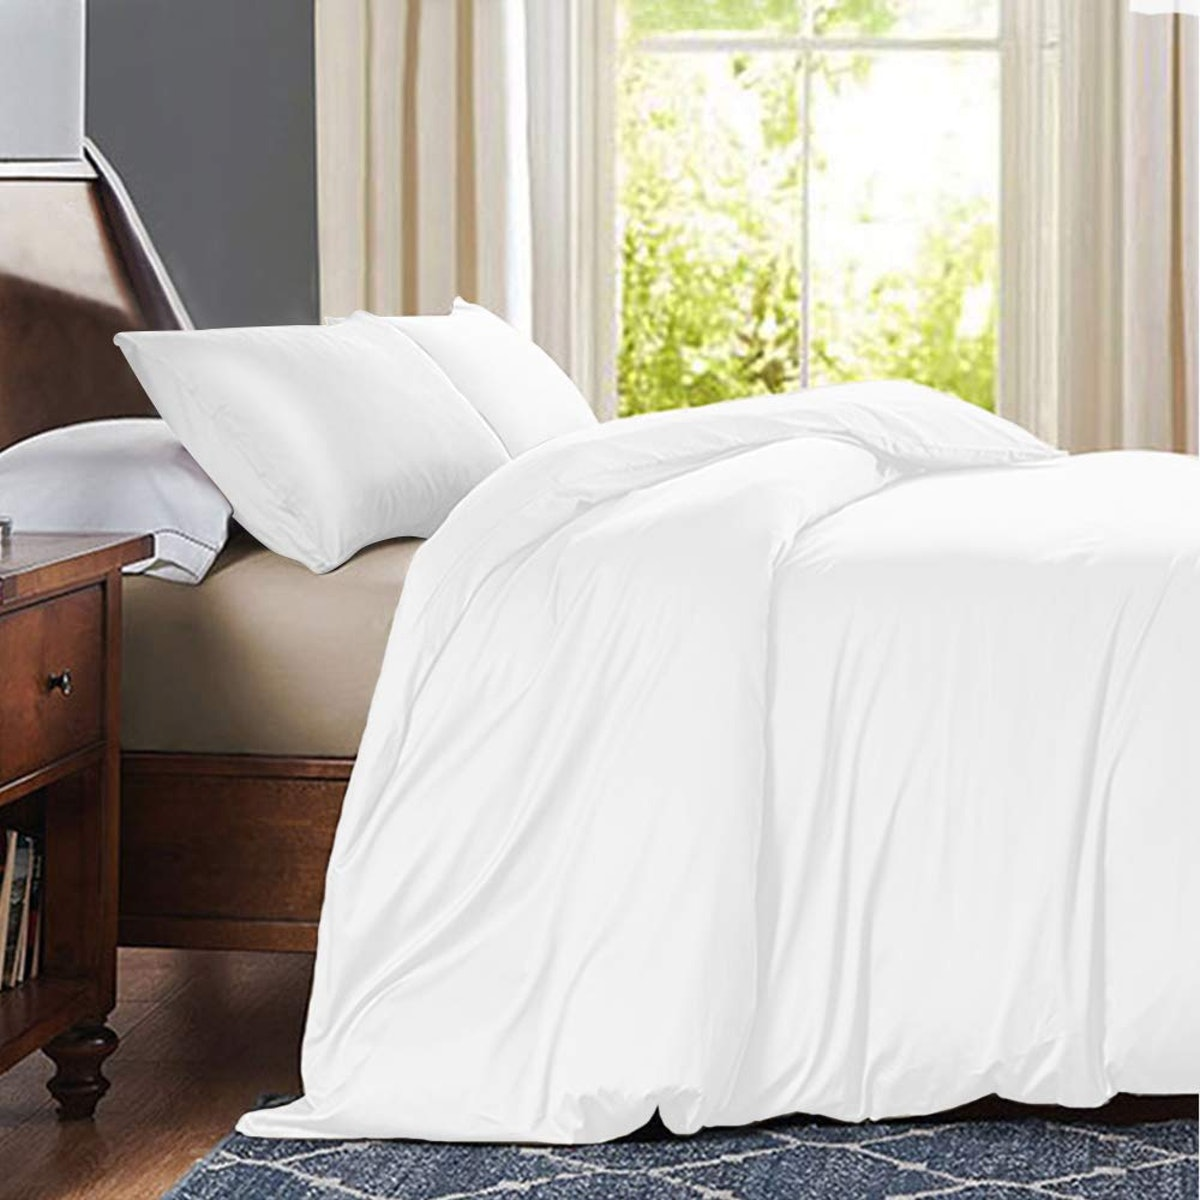 Leccod Satin Pillowcases (2-Pack)